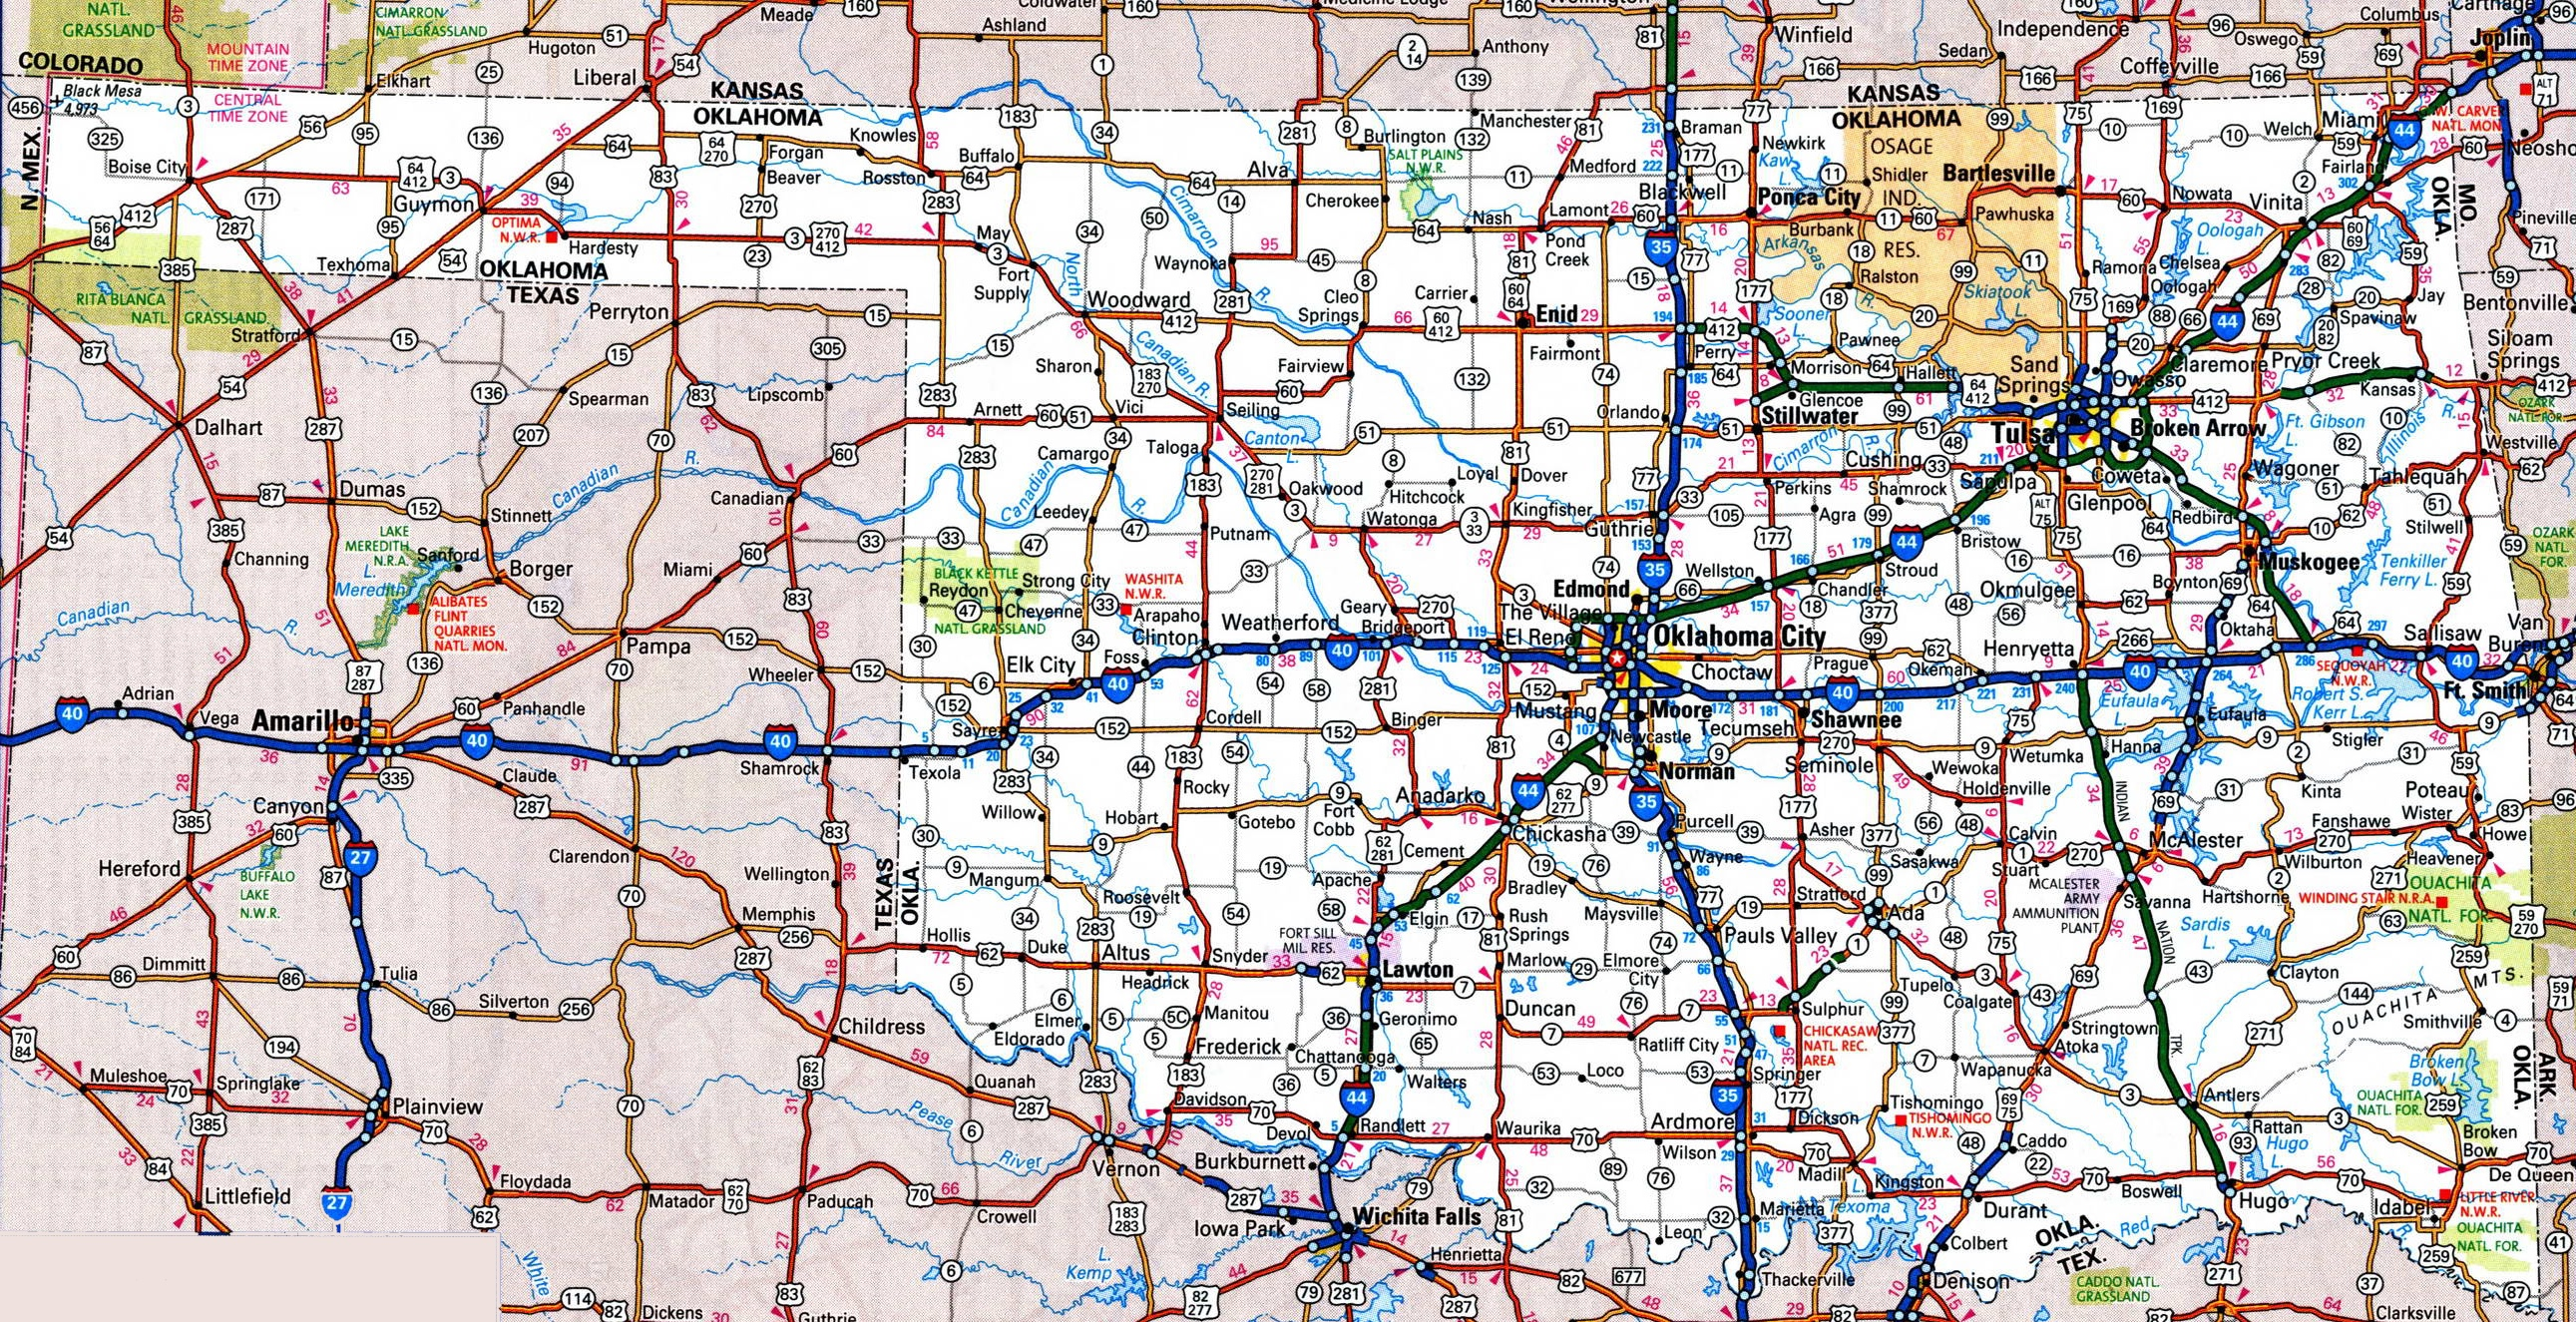 Oklahoma Road Map - Oklahoma highway map